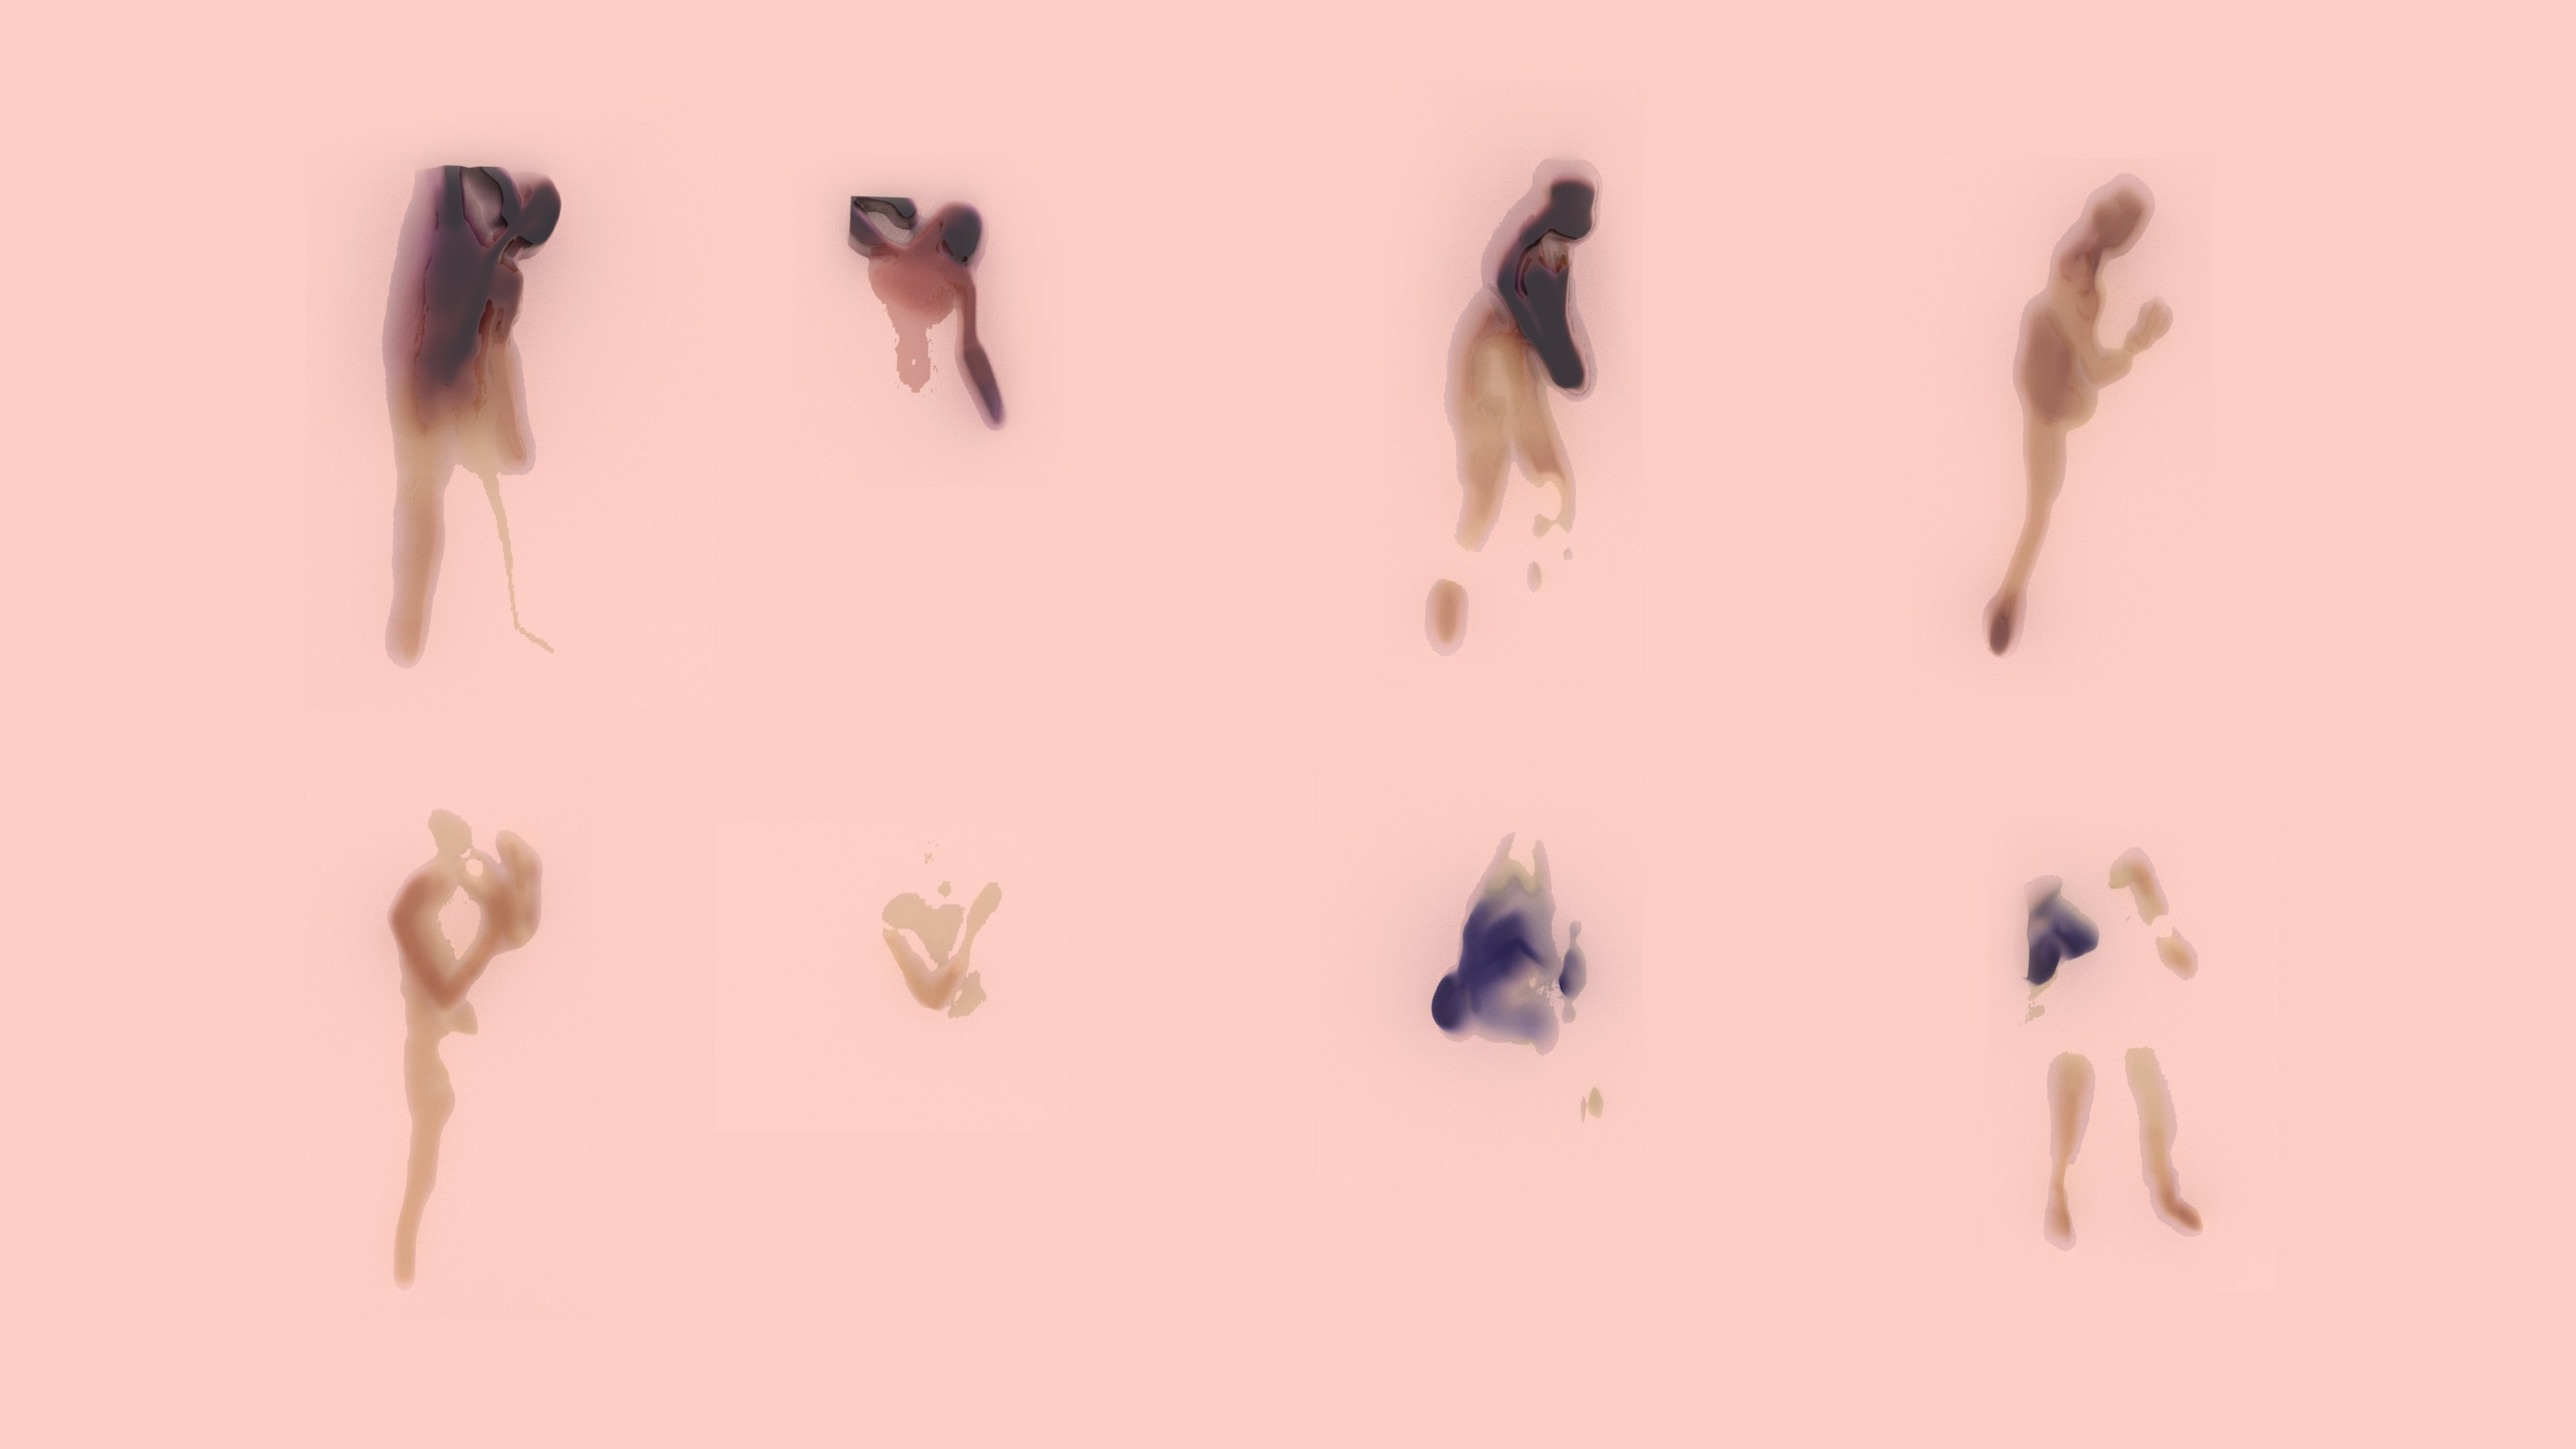 8 different body figures separated into 2 lines of 4 figures. Each figure ranges in shade of colour from blue to red. The background of the image is a light pink. Some figures are less perceptible than the others.